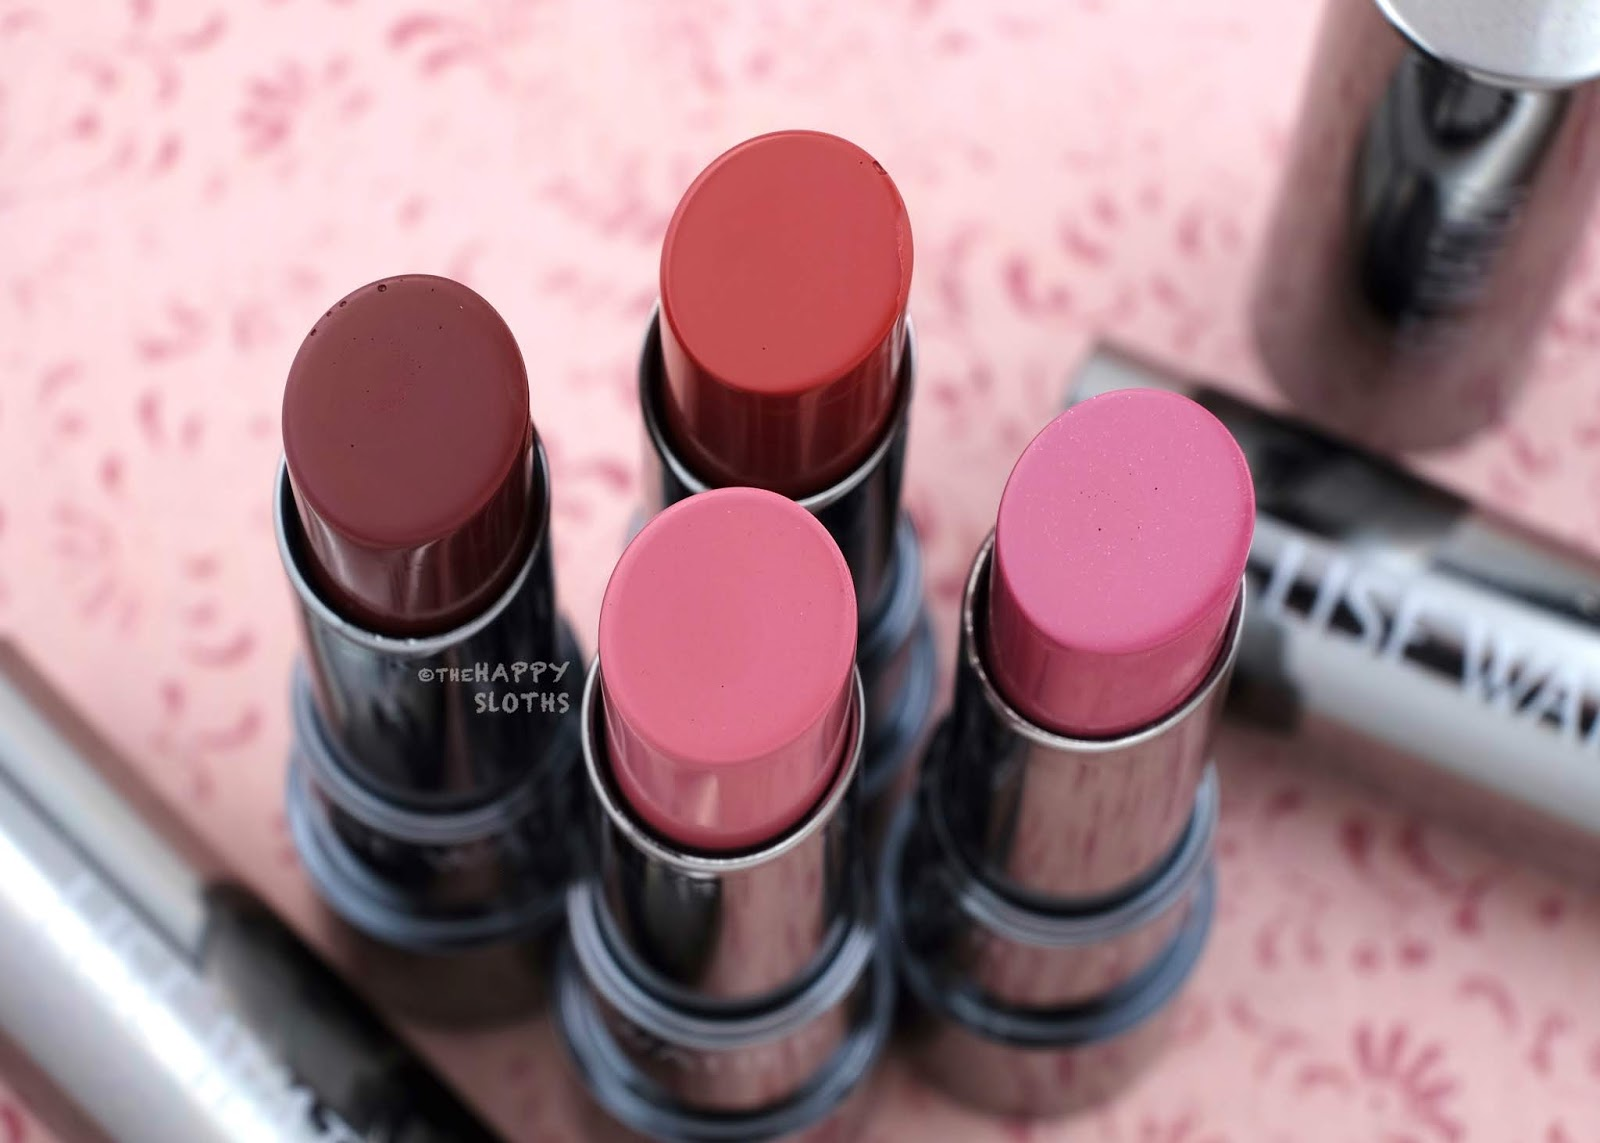 Lise Watier | *NEW SHADES* Rouge Fondant Suprême Lipstick: Review and Swatches